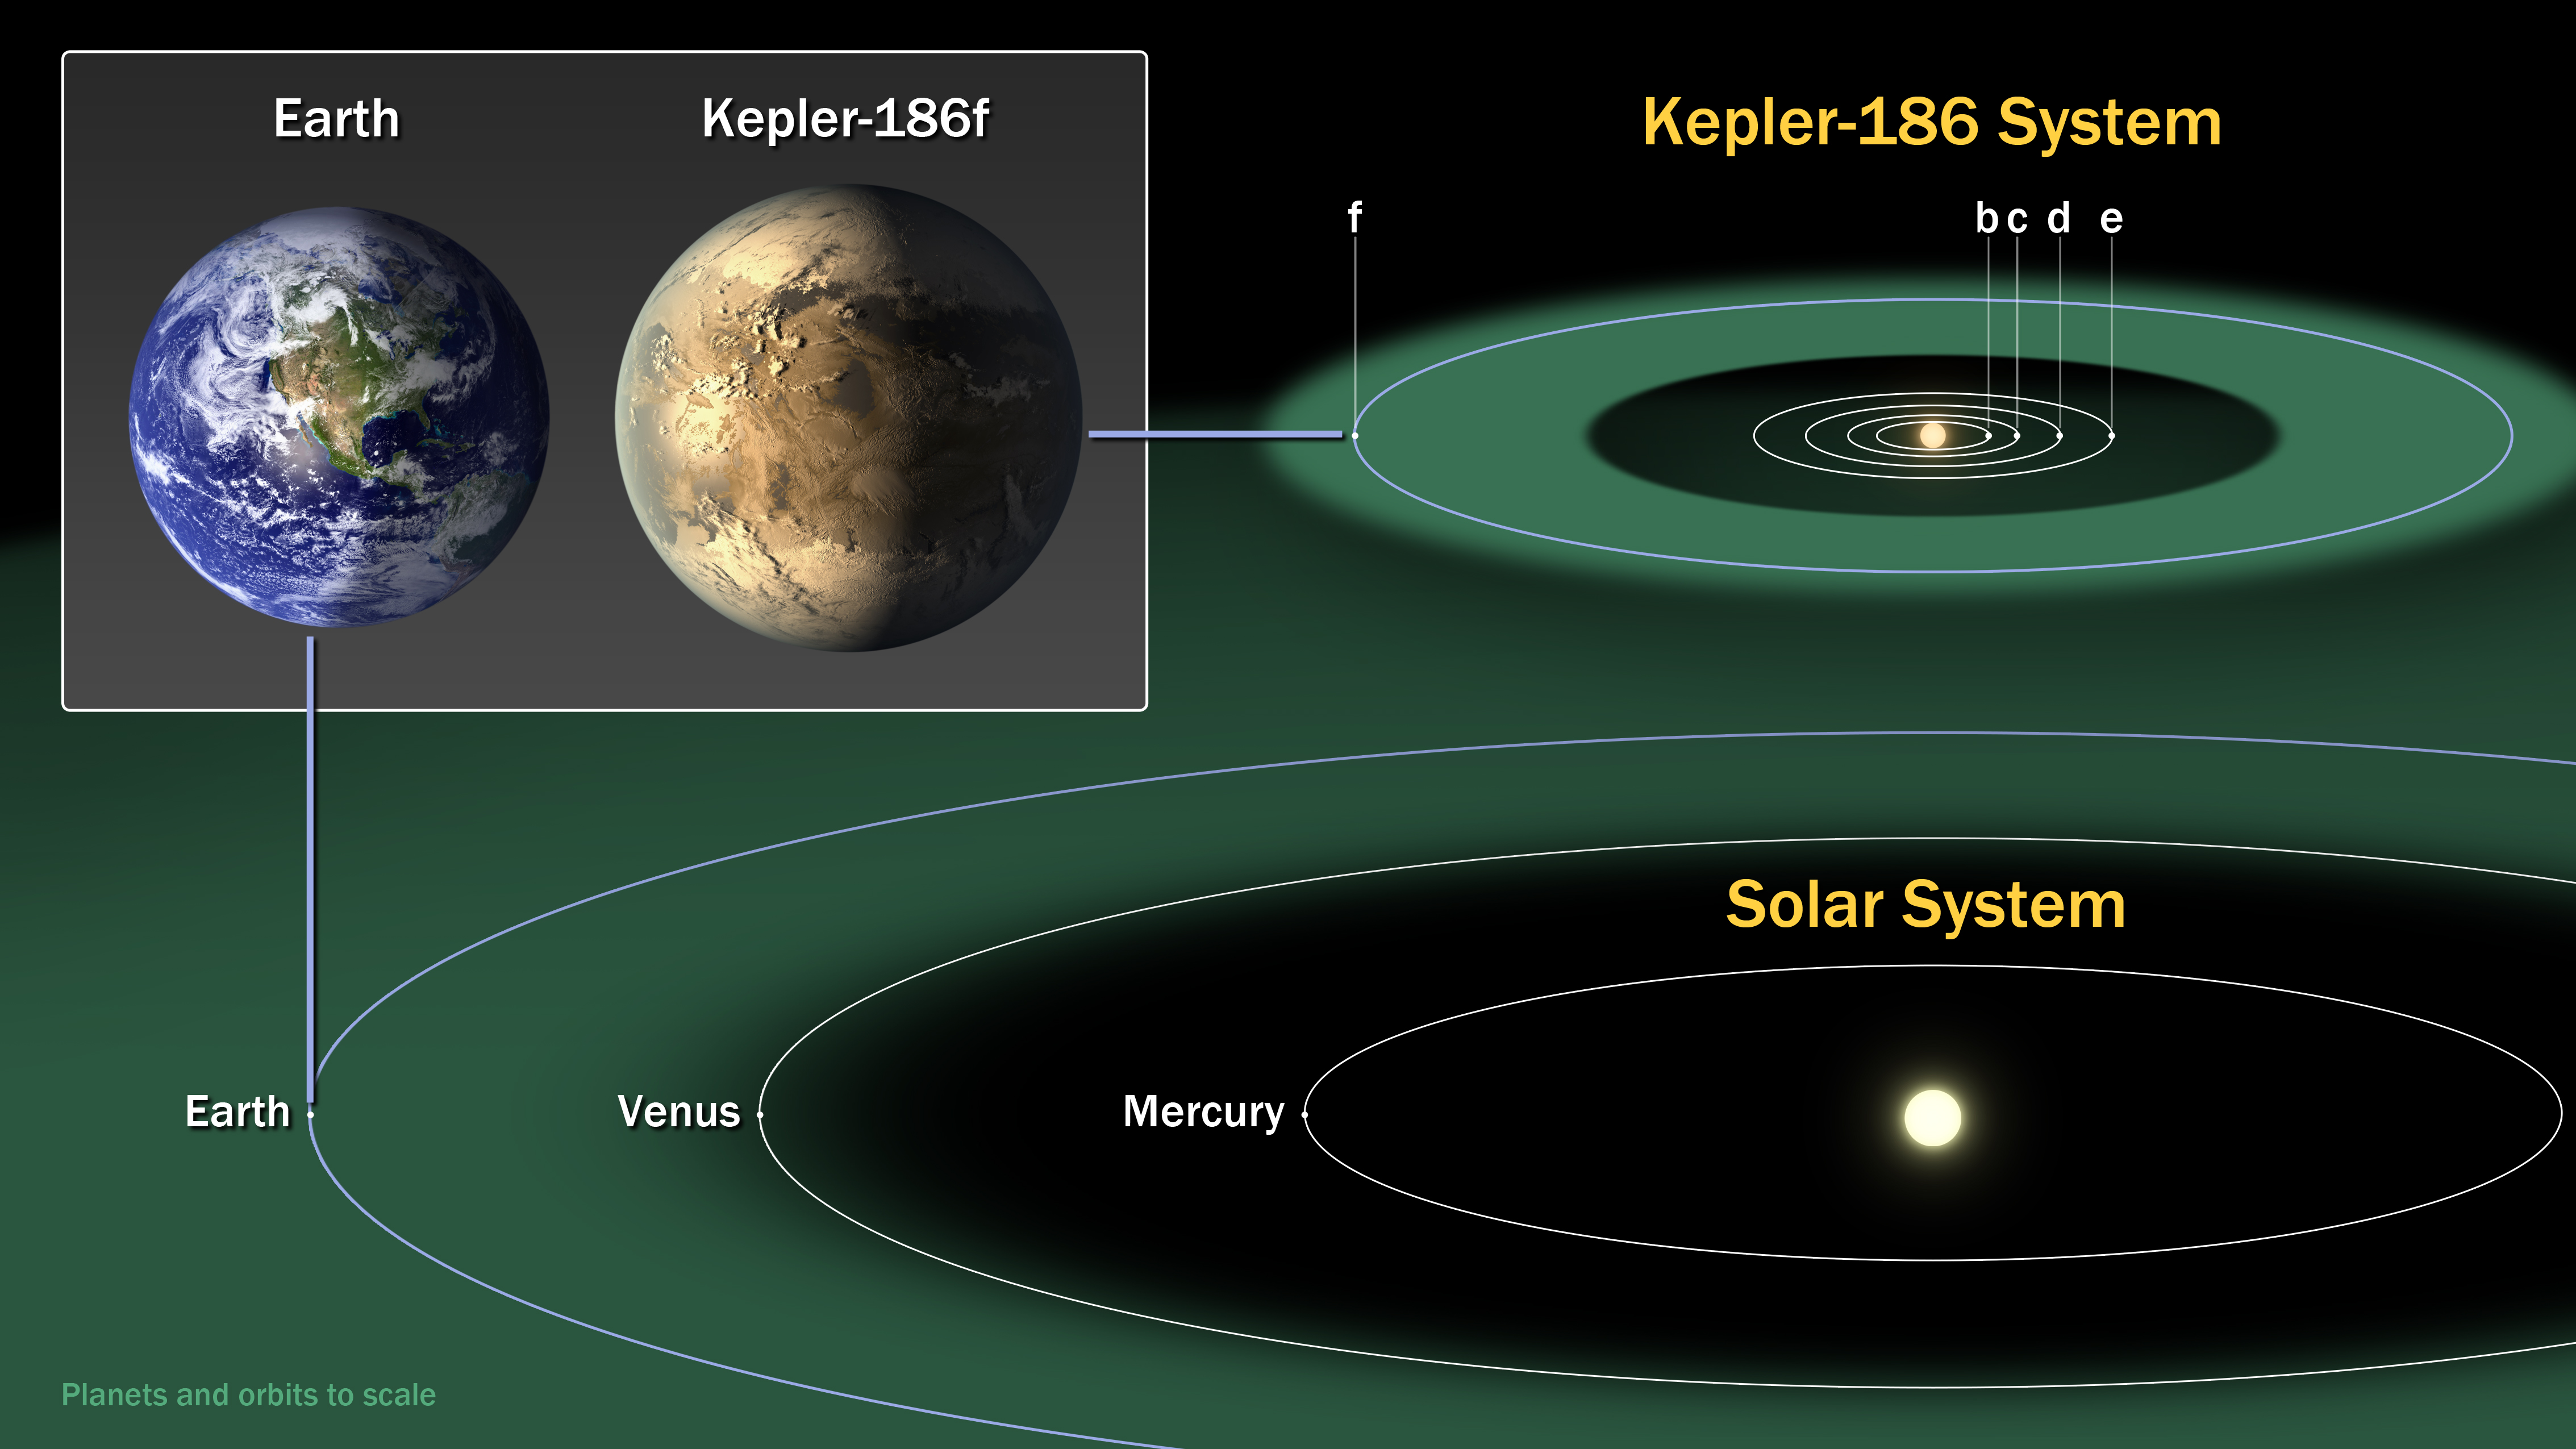 Kepler 186 and the solar system nasa the diagram compares the planets of our inner solar system to kepler 186 a ccuart Choice Image